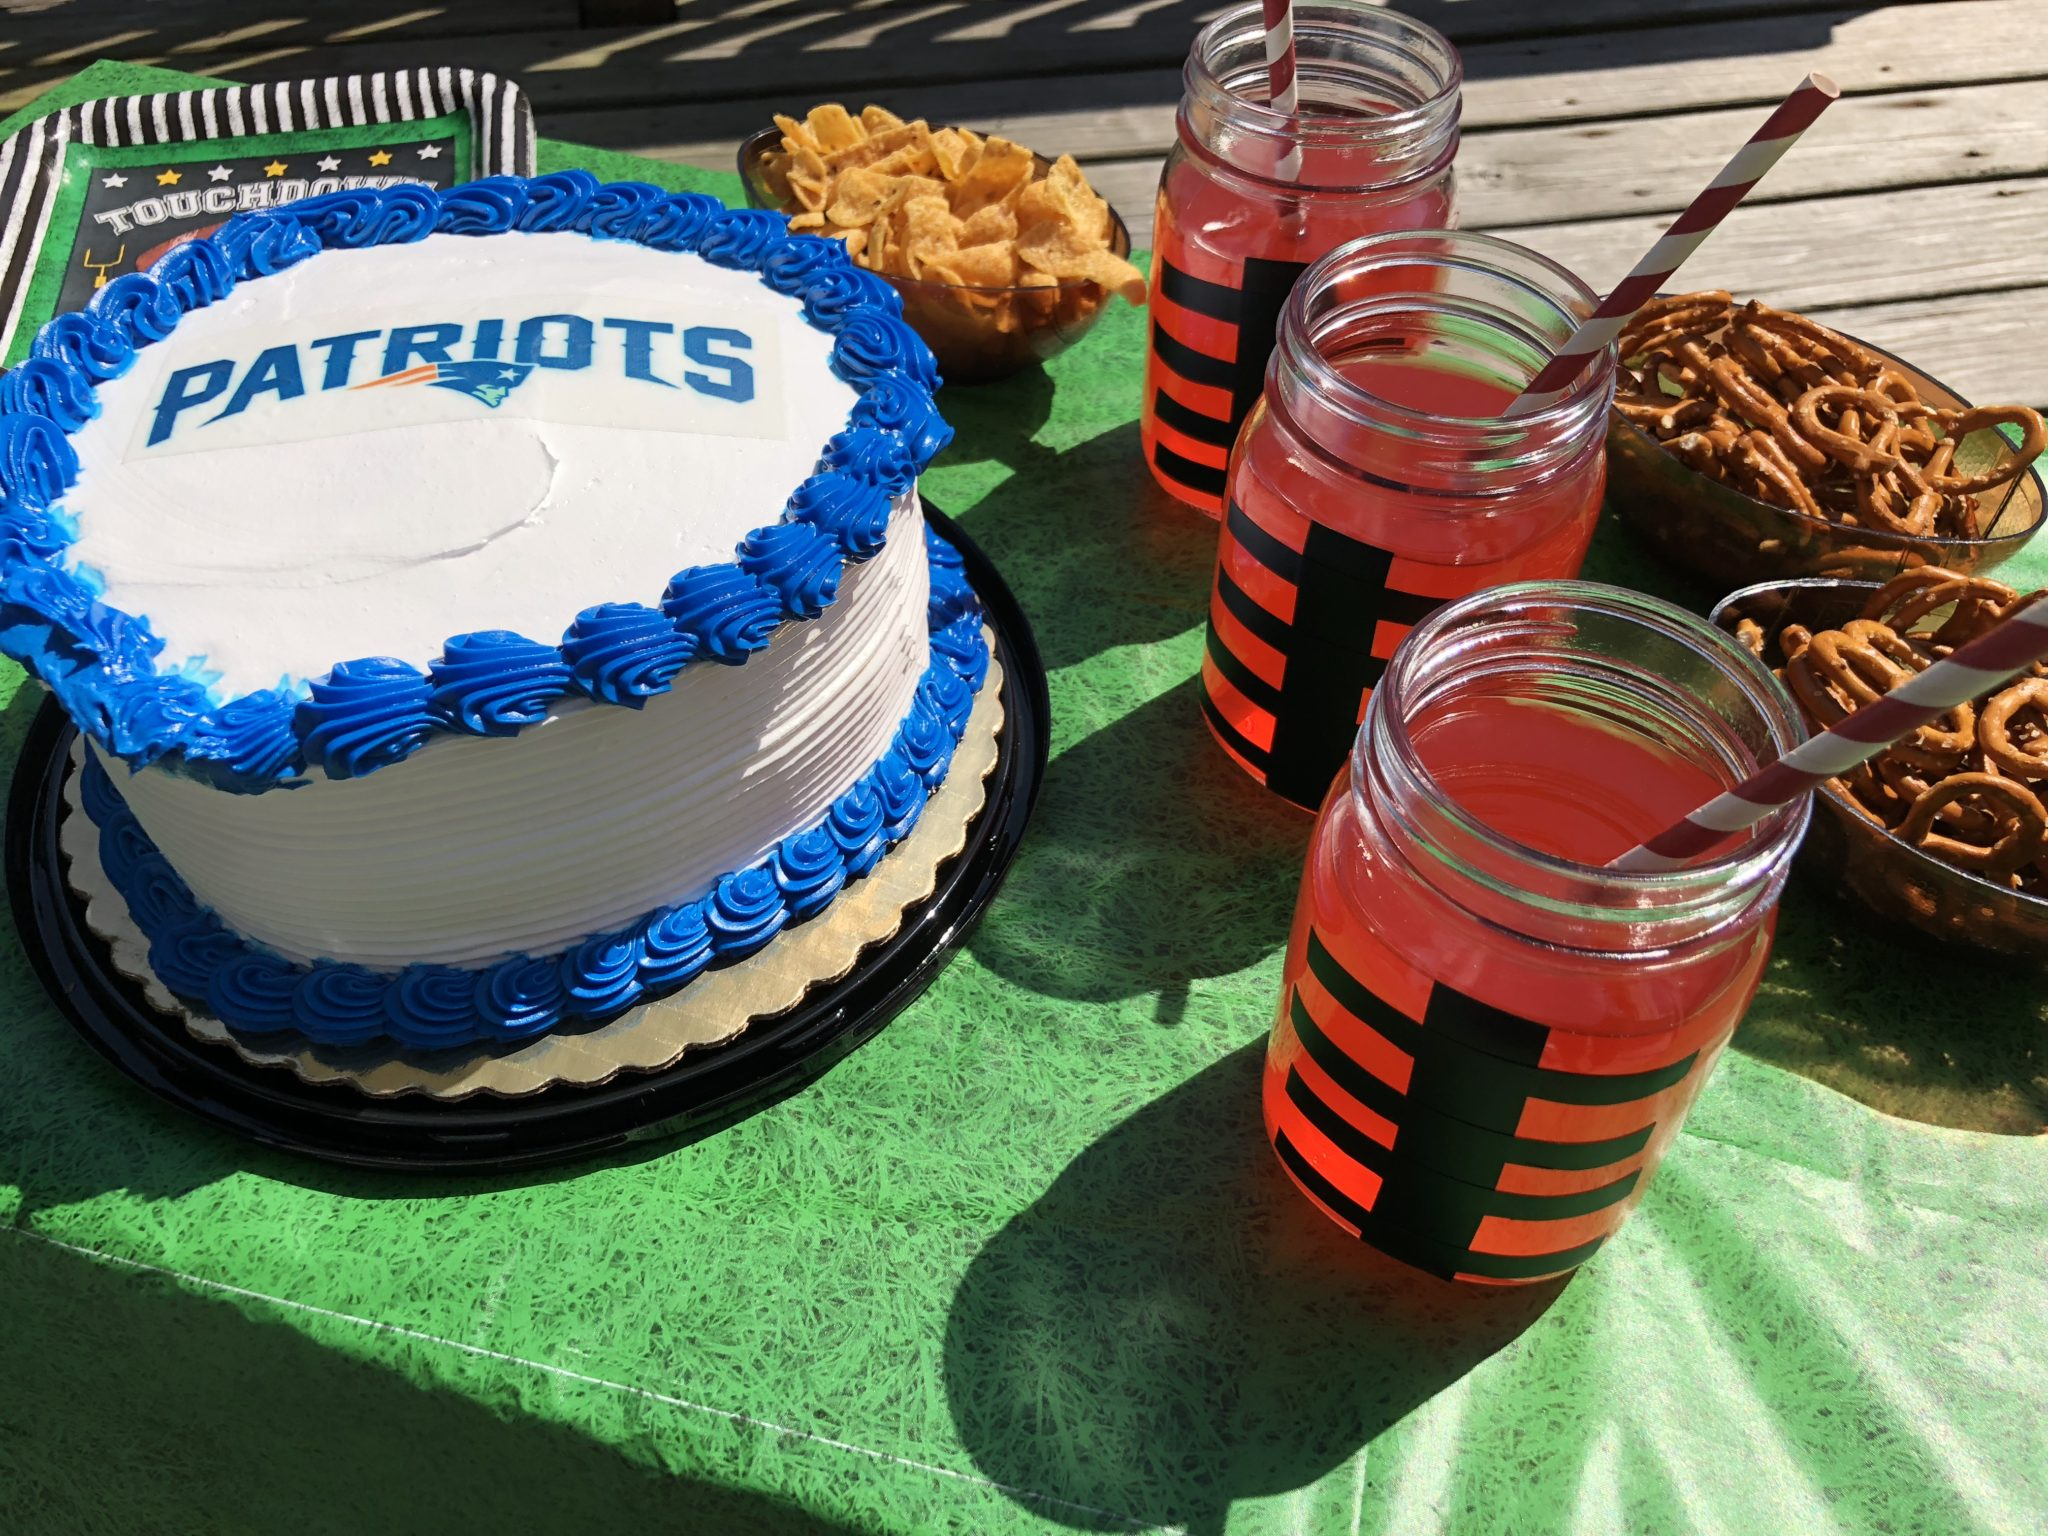 If you want to celebrate the upcoming football season in a fun way, check out your local Stop & Shop bakery for officially licensed NFL cakes today.